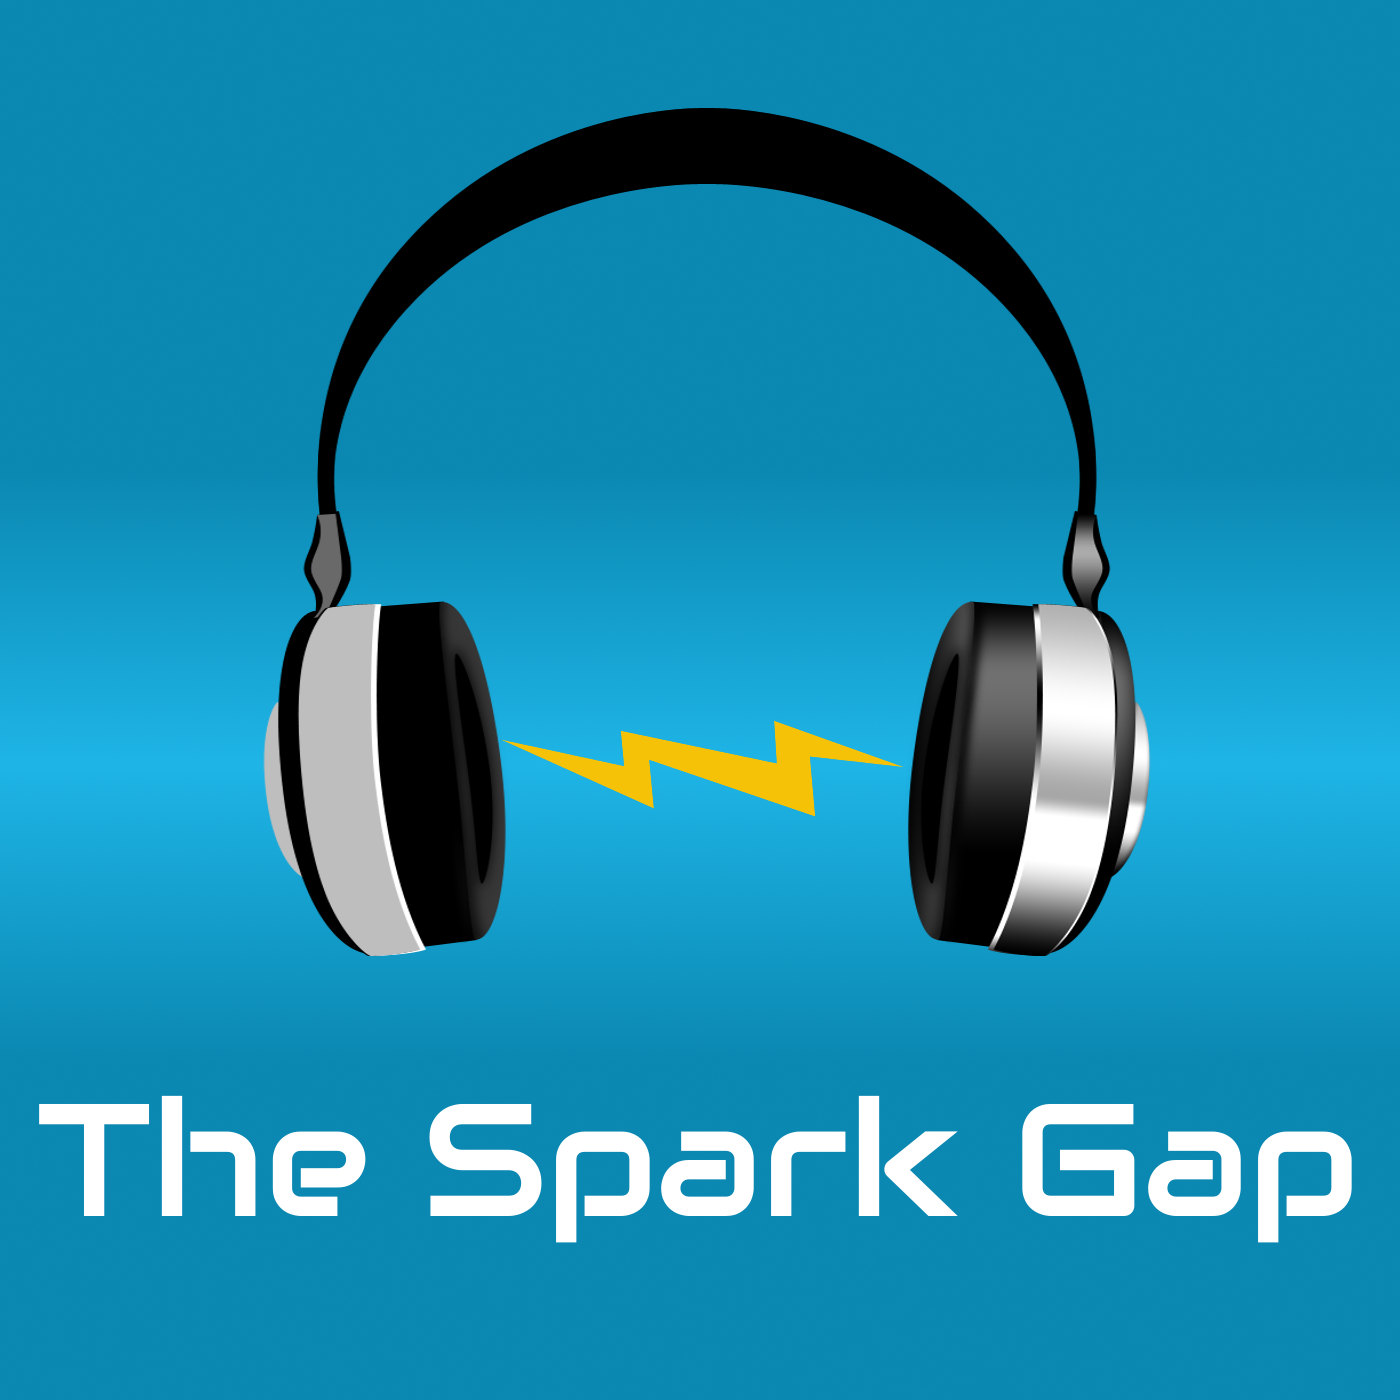 How To Identify Types Of Capacitors additionally Types Of Capacitors And Their Construction additionally Capacitor Questions Answered Spark Gap Podcast further Zenith6S254Restoration together with Hubmotors. on types of capacitors and their appearance